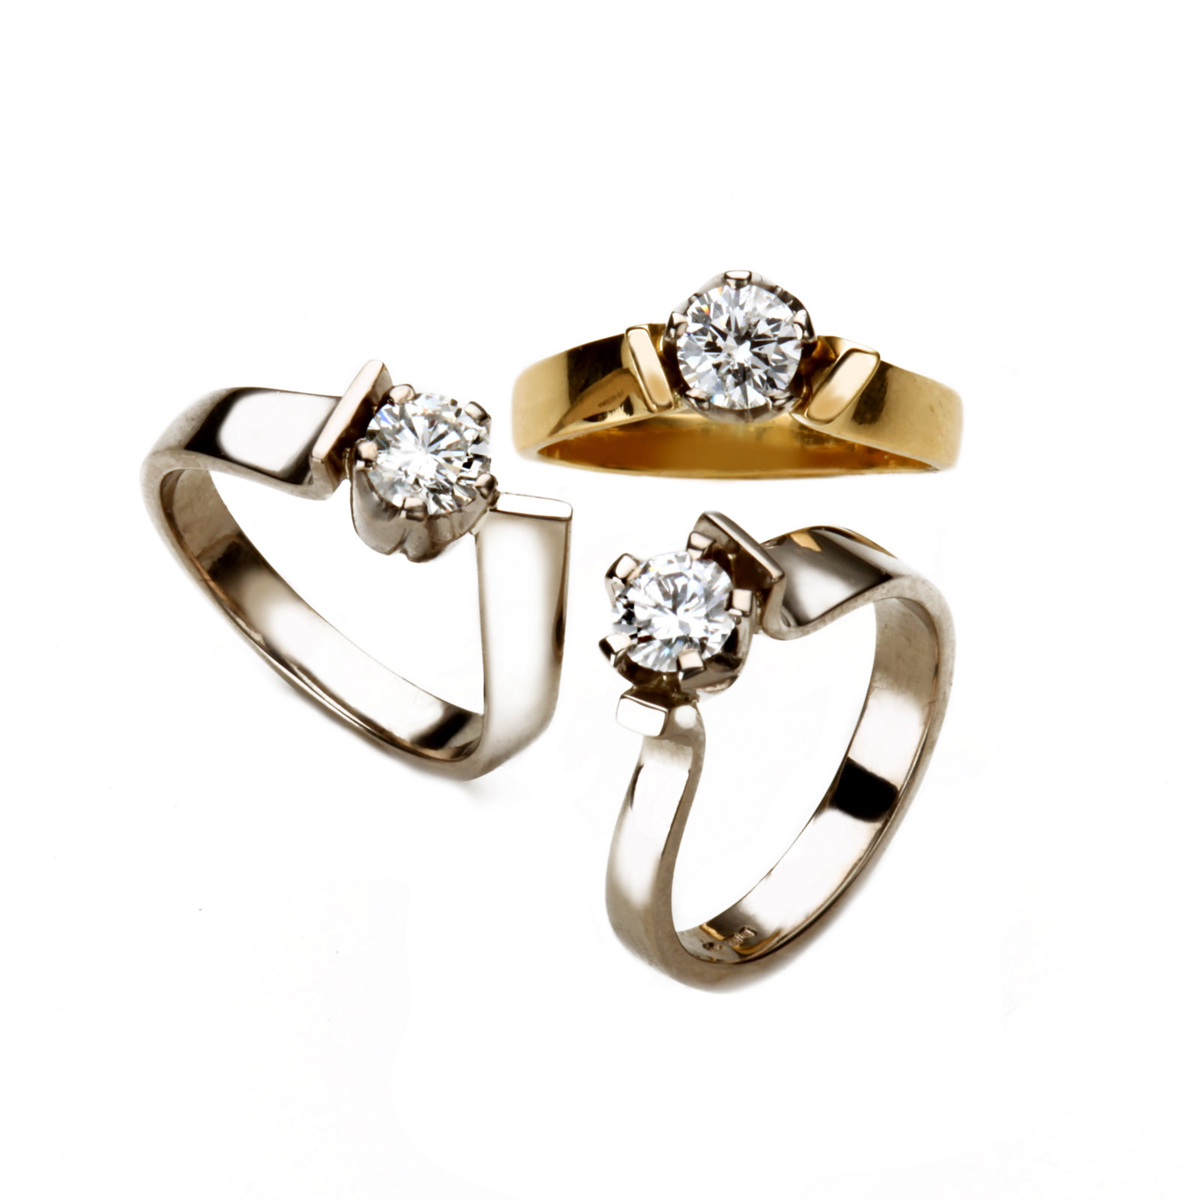 18ct White and Yellow Gold